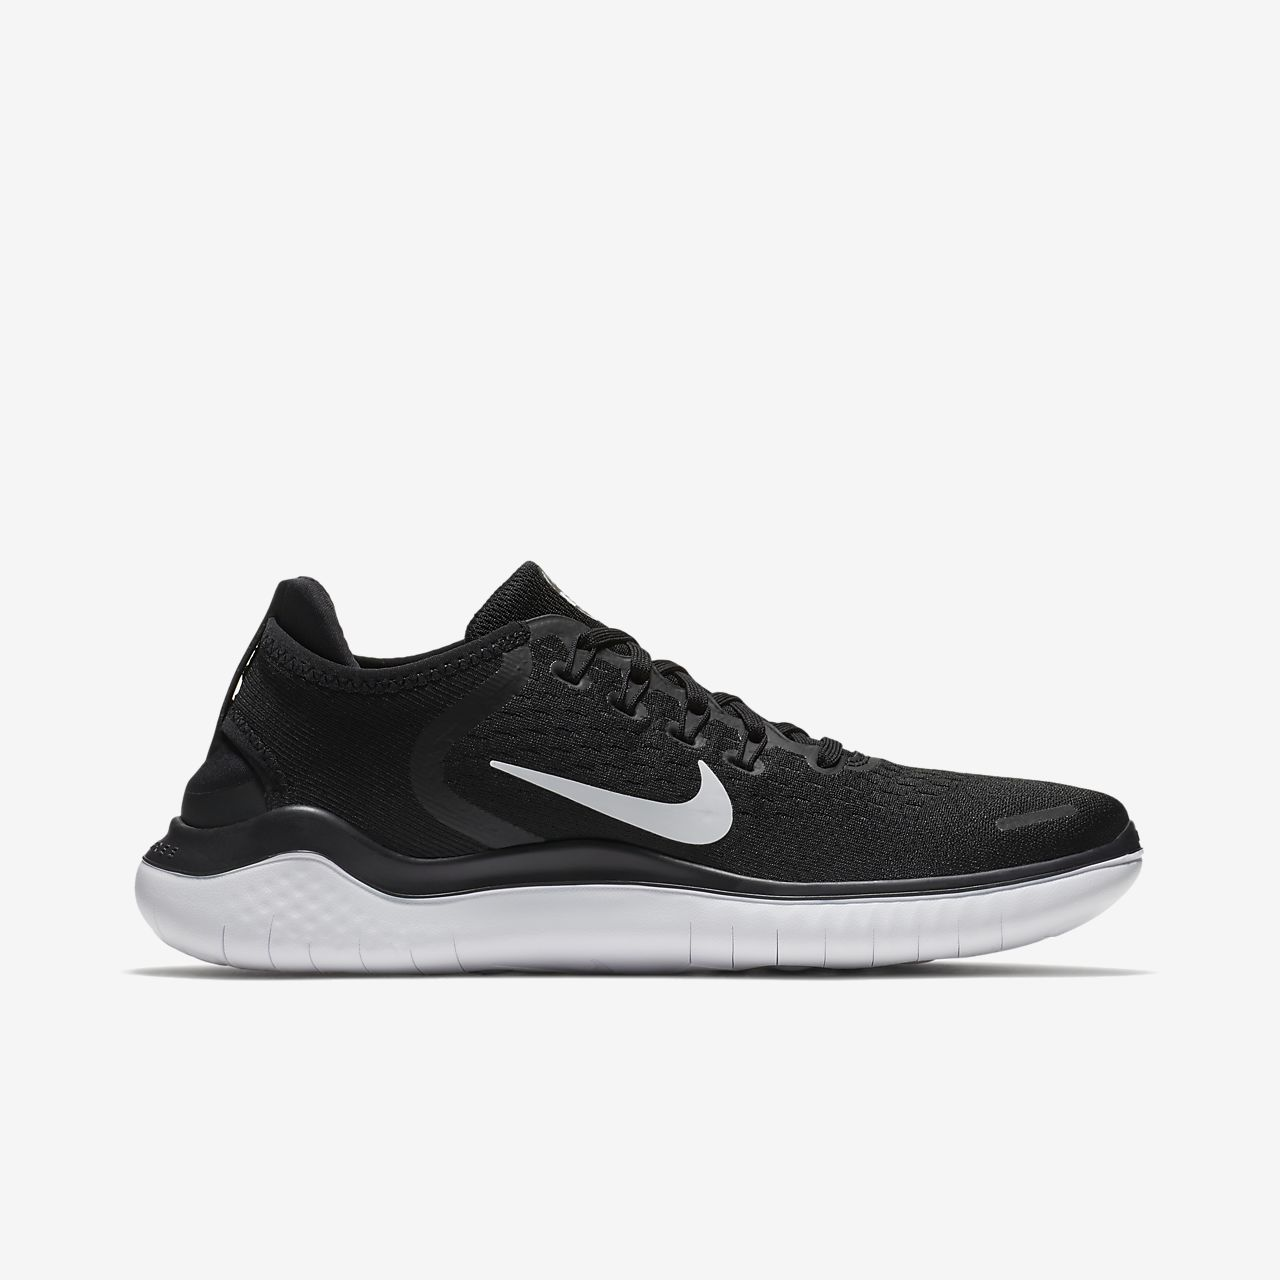 02551f9c48a3d Nike Free RN 2018 Men s Running Shoe. Nike.com IN